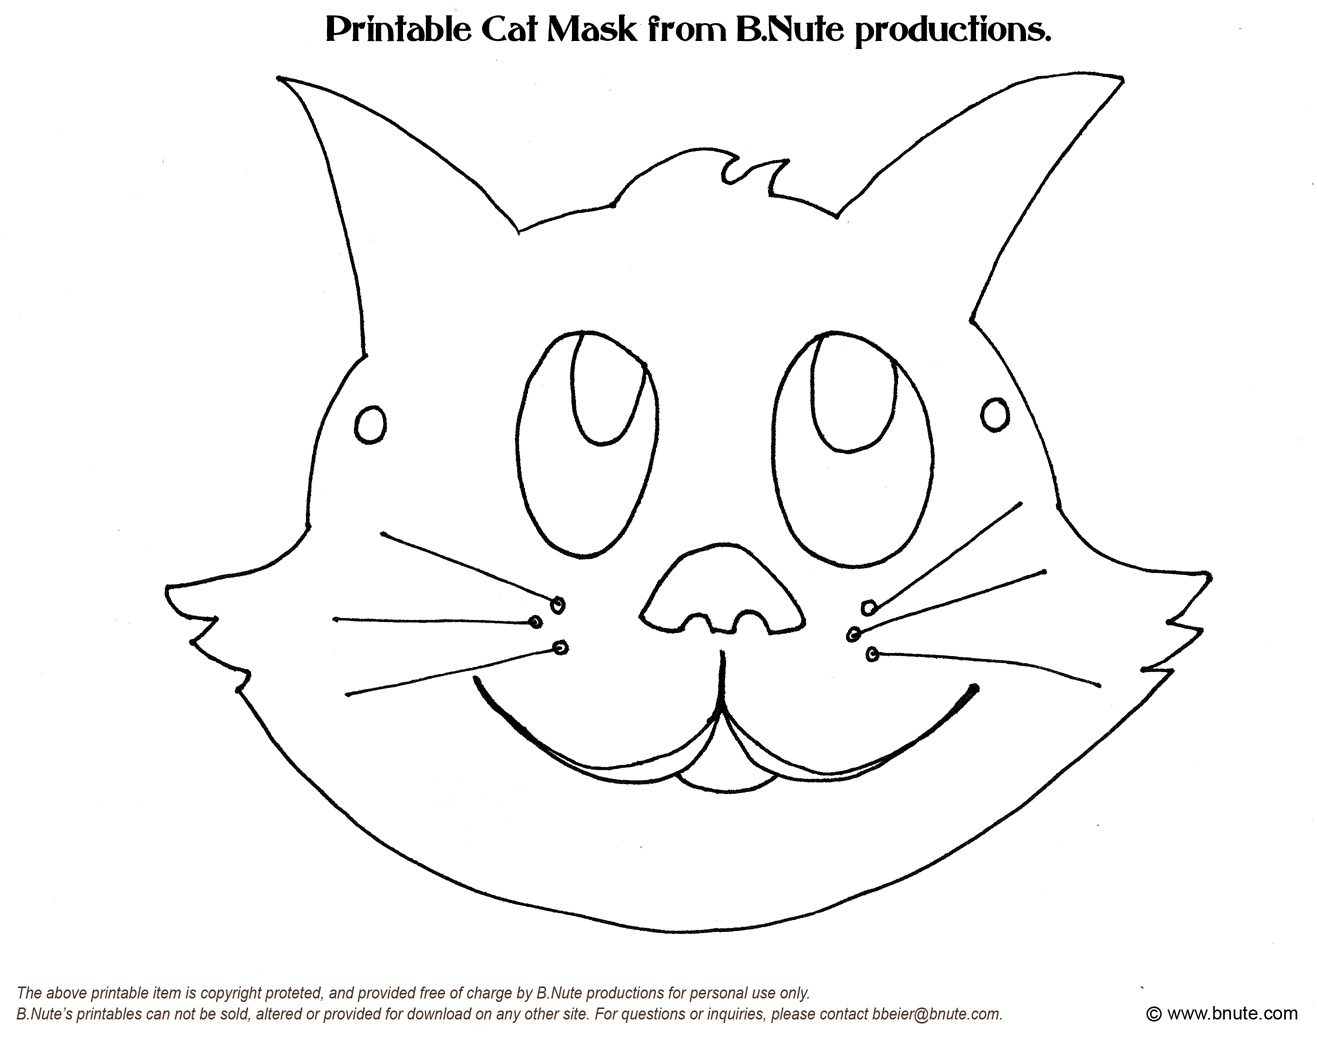 Candid image for cat mask printable